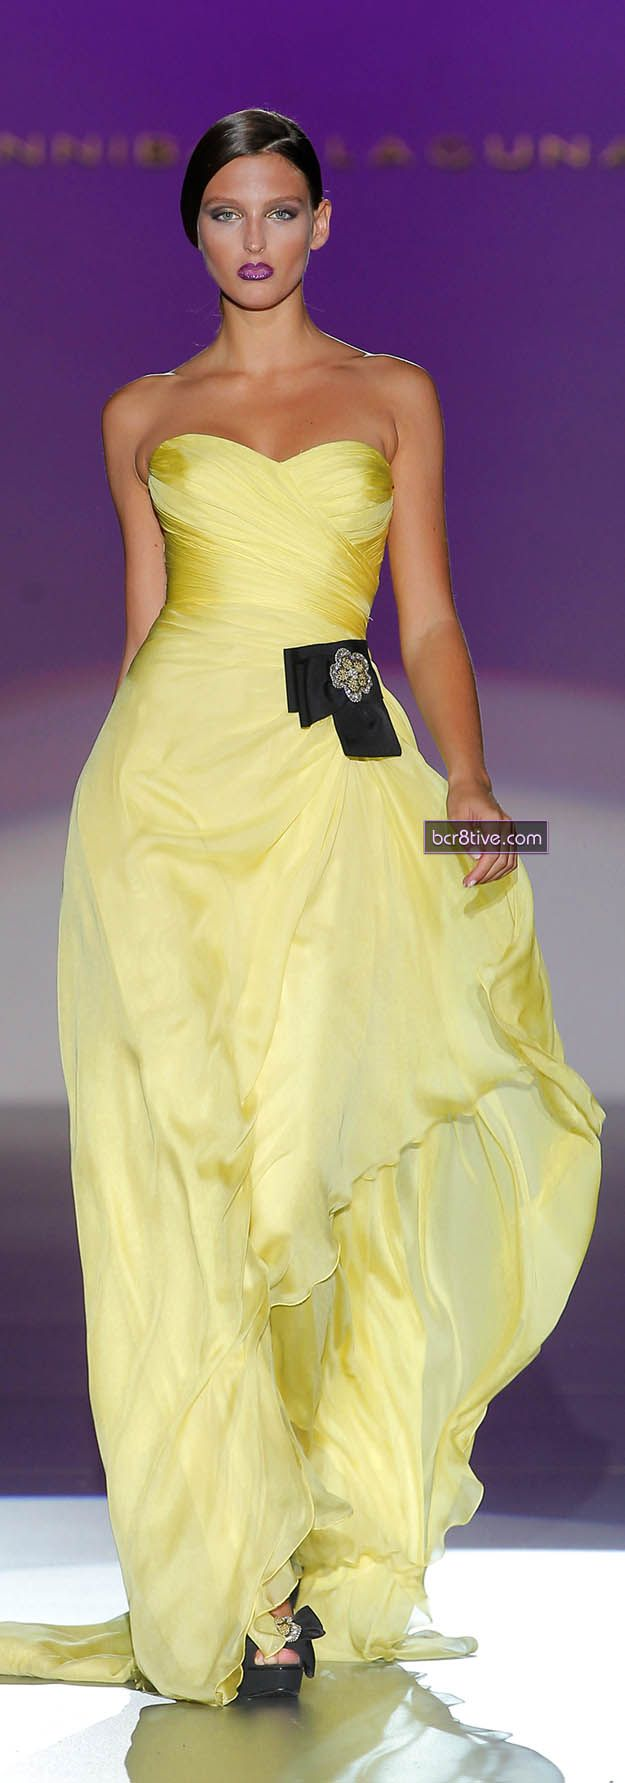 8 best ◈ Fashion Yellow images on Pinterest | Yellow, Evening gowns ...